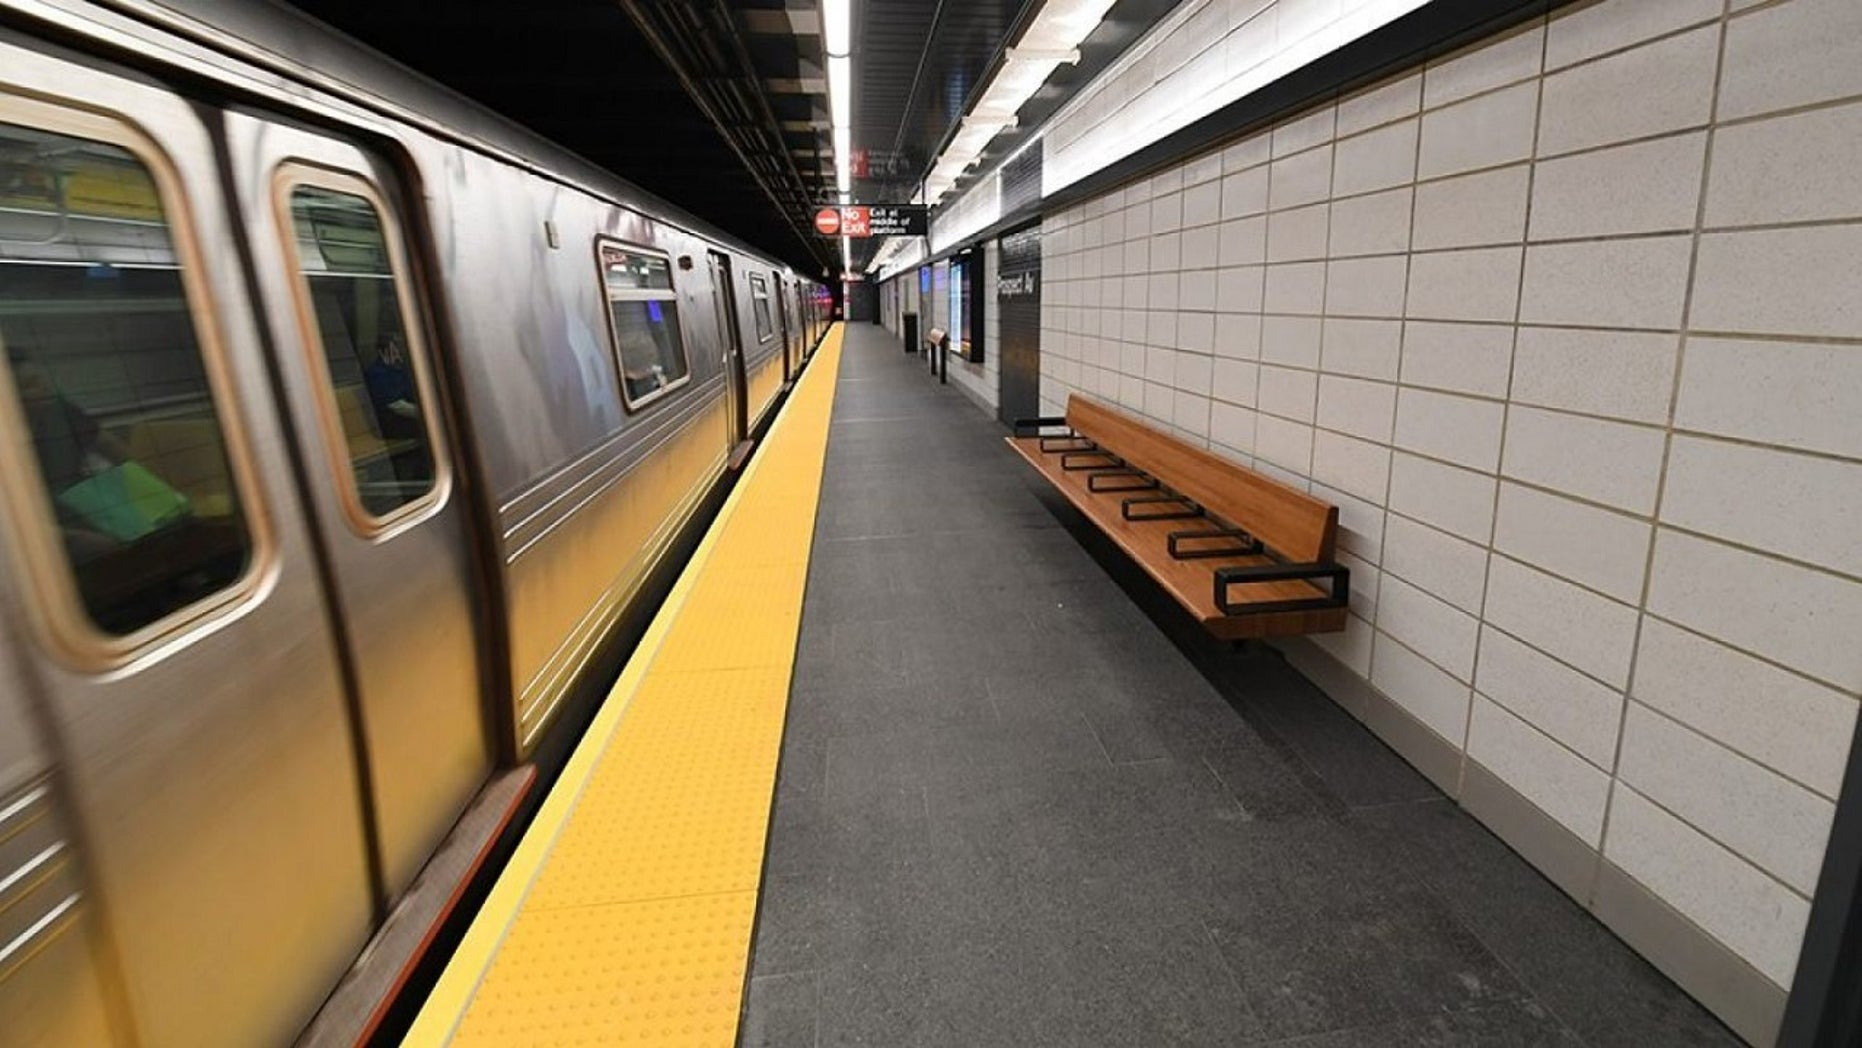 A subway rider allegedly kicked a passenger on a Brooklyn, N.Y., subway train and hurled a racial slur at the woman.